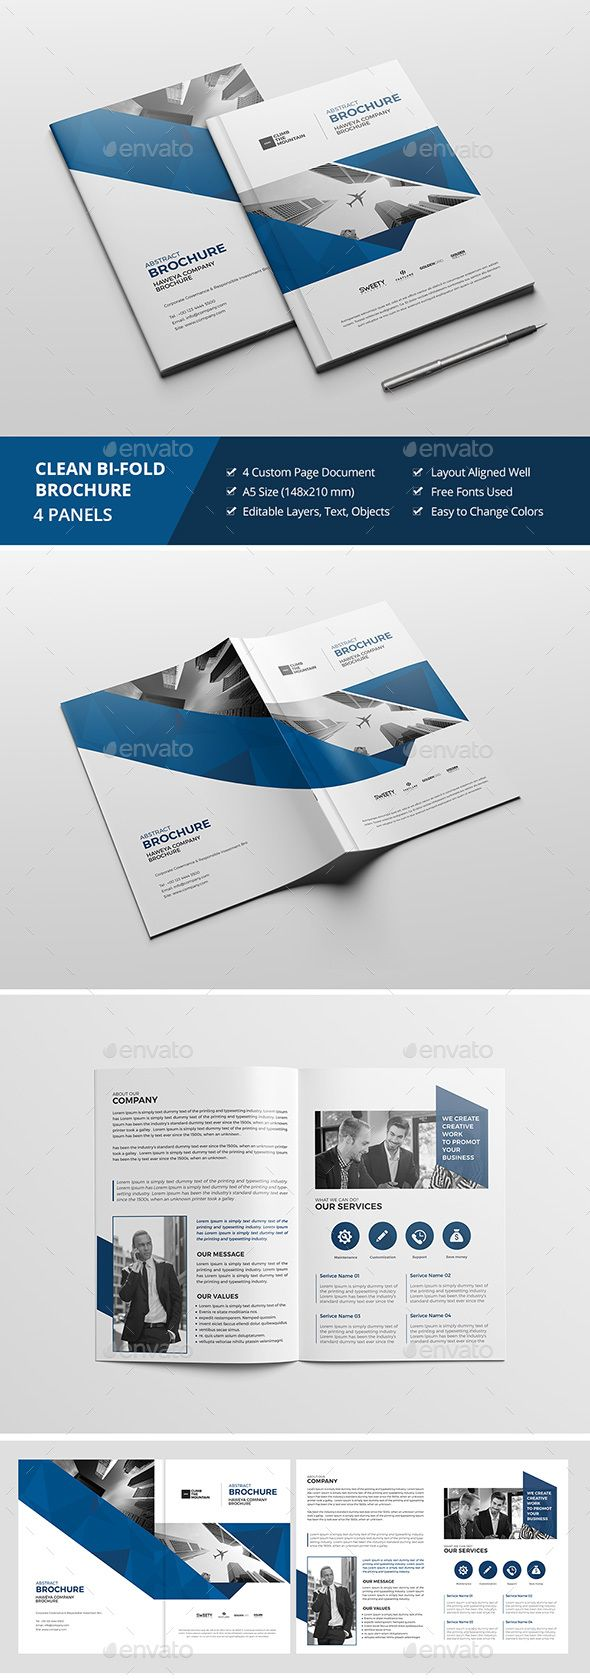 Haweya Bi-Fold Brochure 10This Photoshop Brochure Template is Clean & Professional. Create your companys documentation quick and e